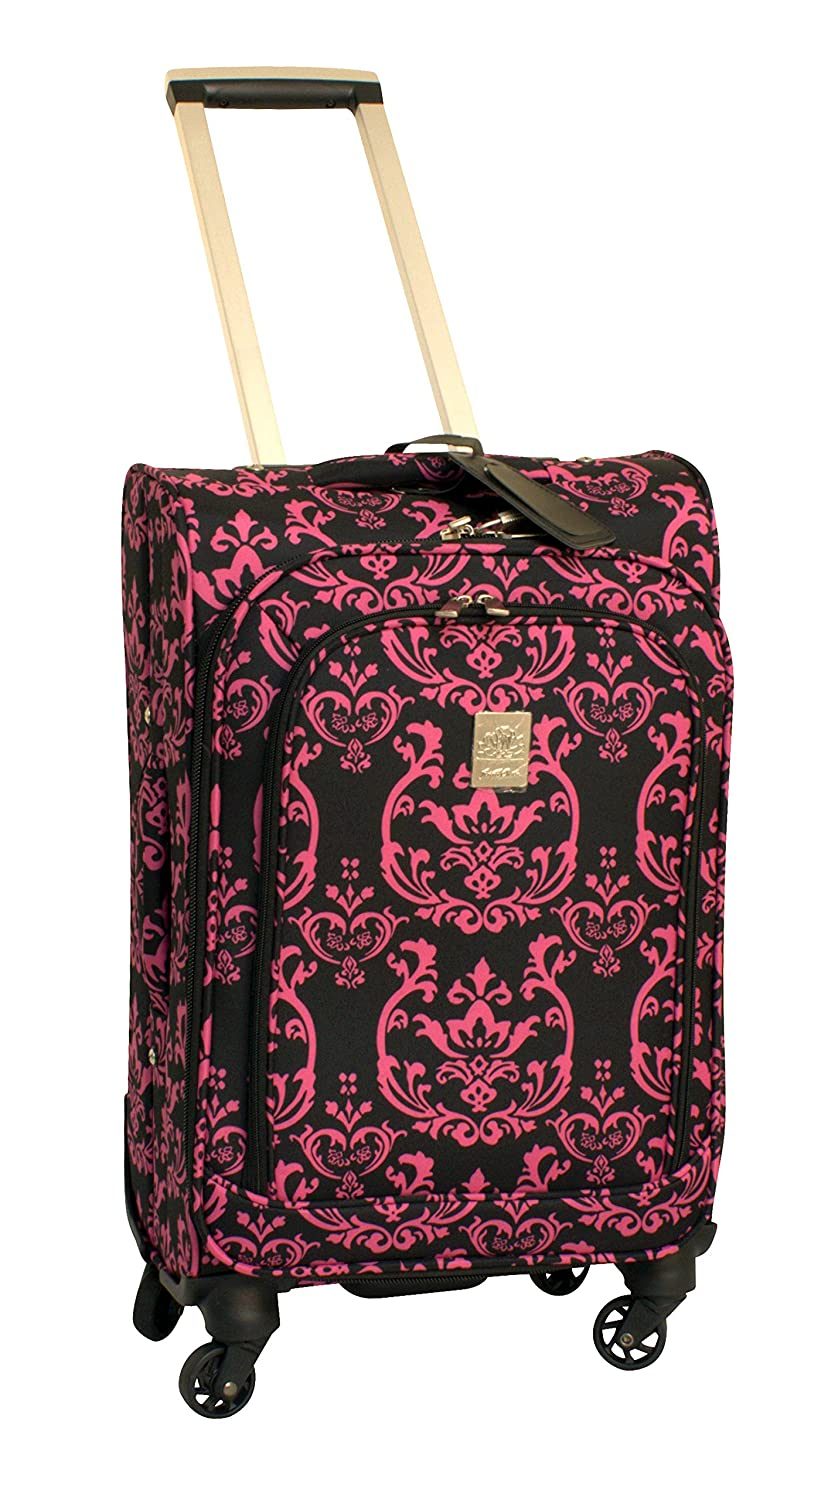 Jenni Chan Damask 360 Quattro 21-Inch Upright Spinner Carry on Luggage, Pink 004-21